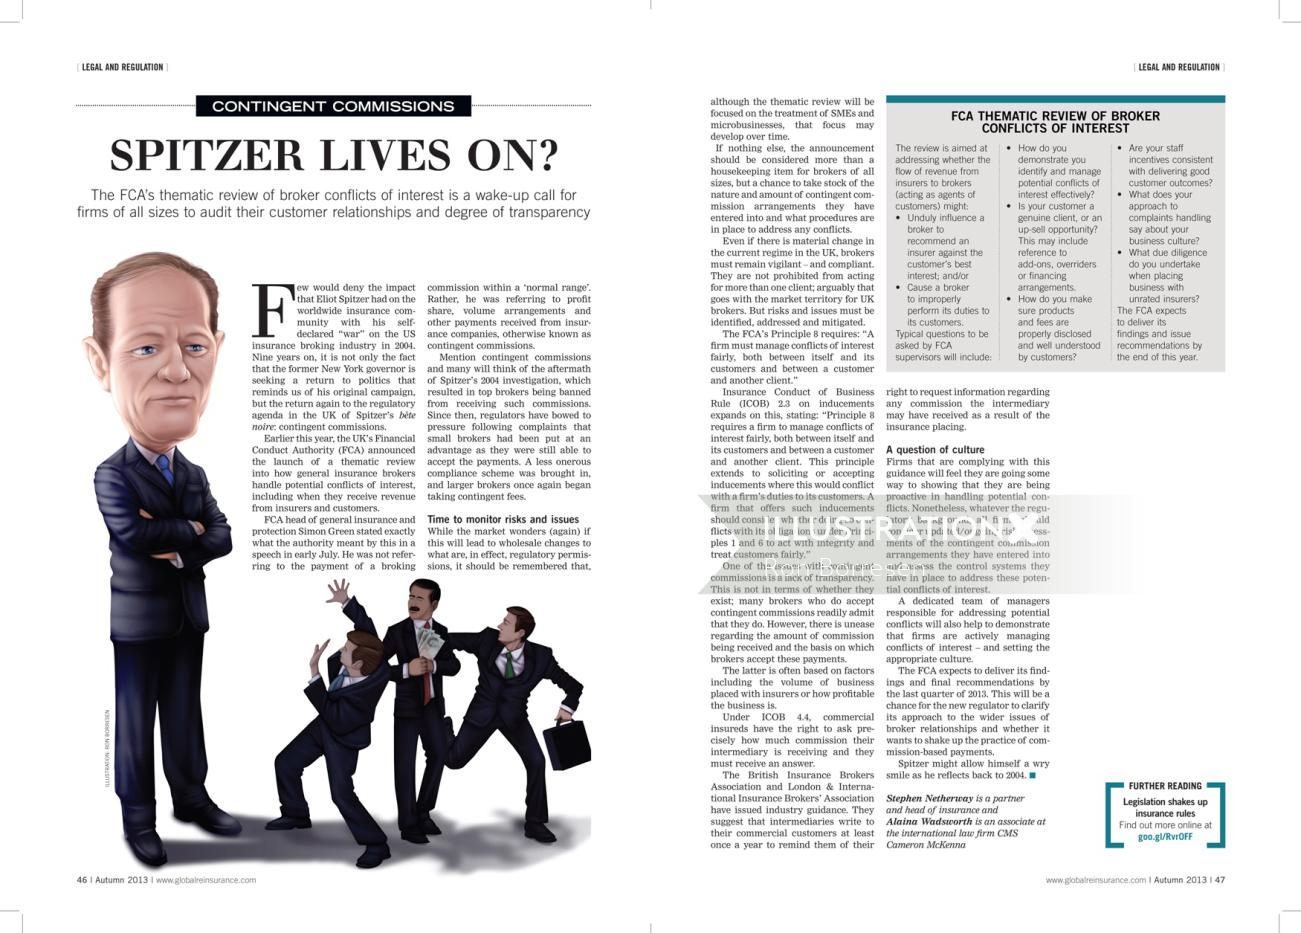 Editorial illustration spitzer lives on